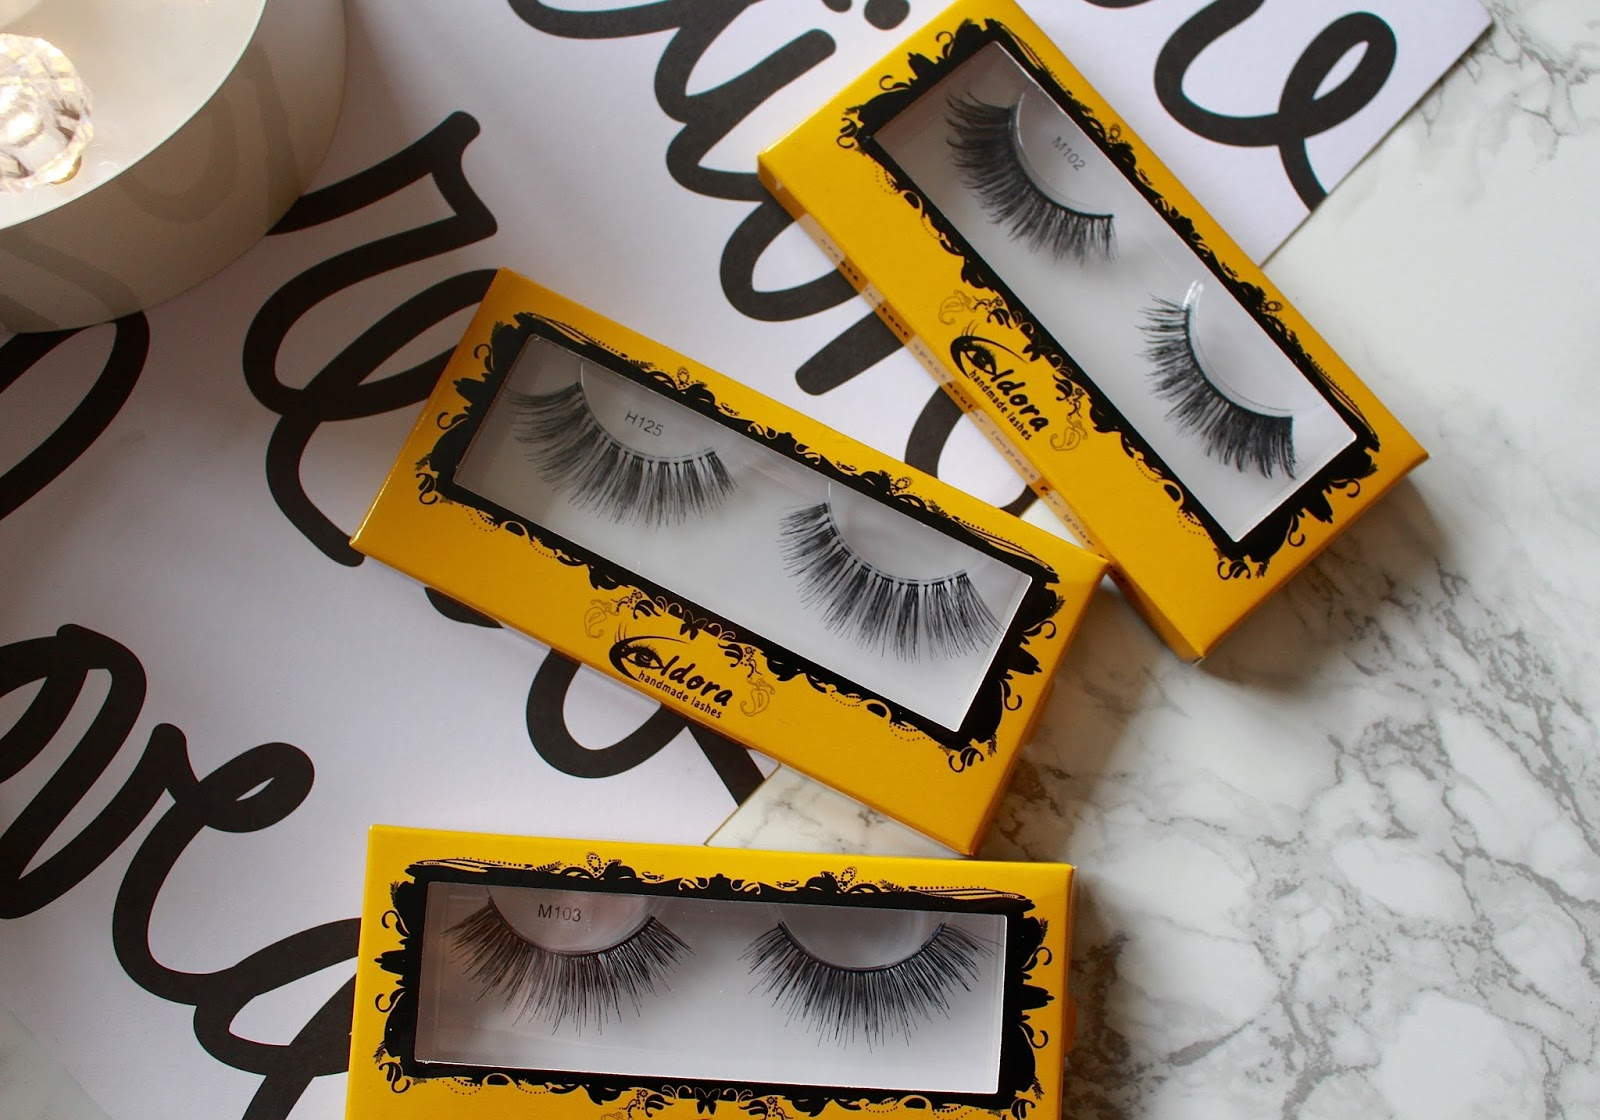 Eldora Eyelashes Review UK, Forever Beaux Review 2015, Best UK Eyelashes